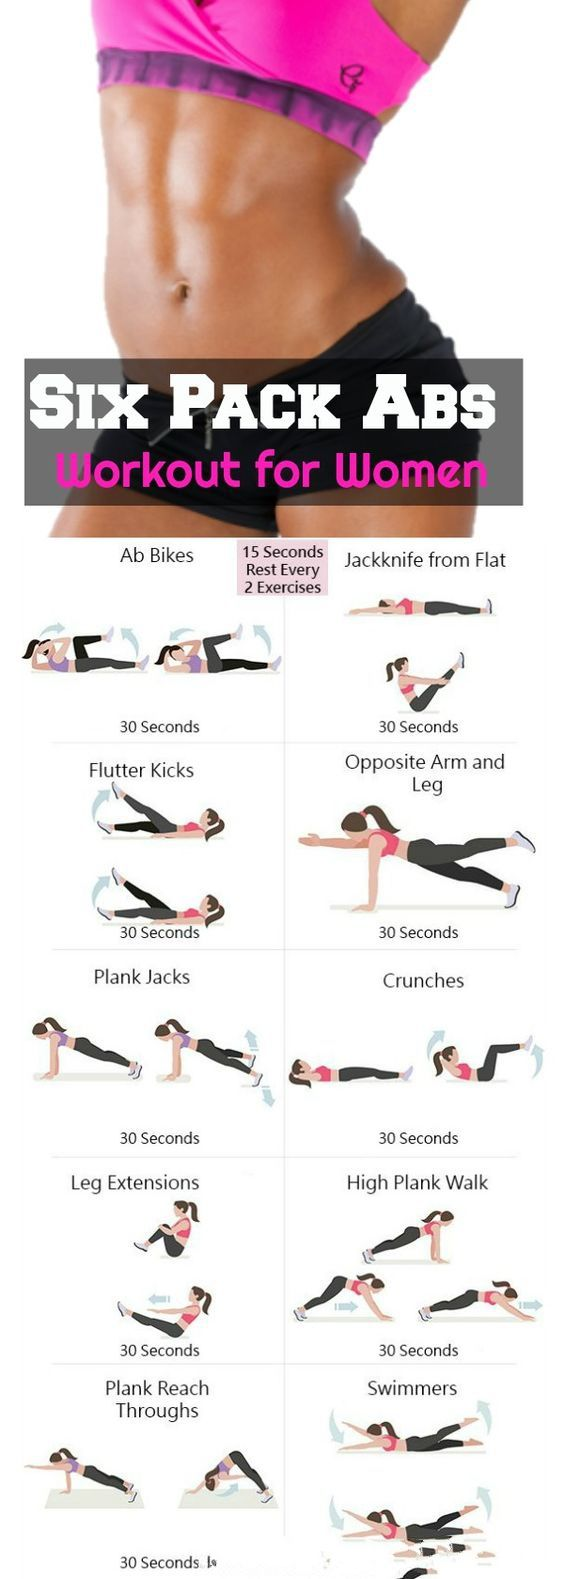 Best 5 Yoga Workouts for Six Pack Abs For Women - Feel the burn with this intense yoga workout! These explosive exercises will shape up your abs and melt that muffin fat Fast